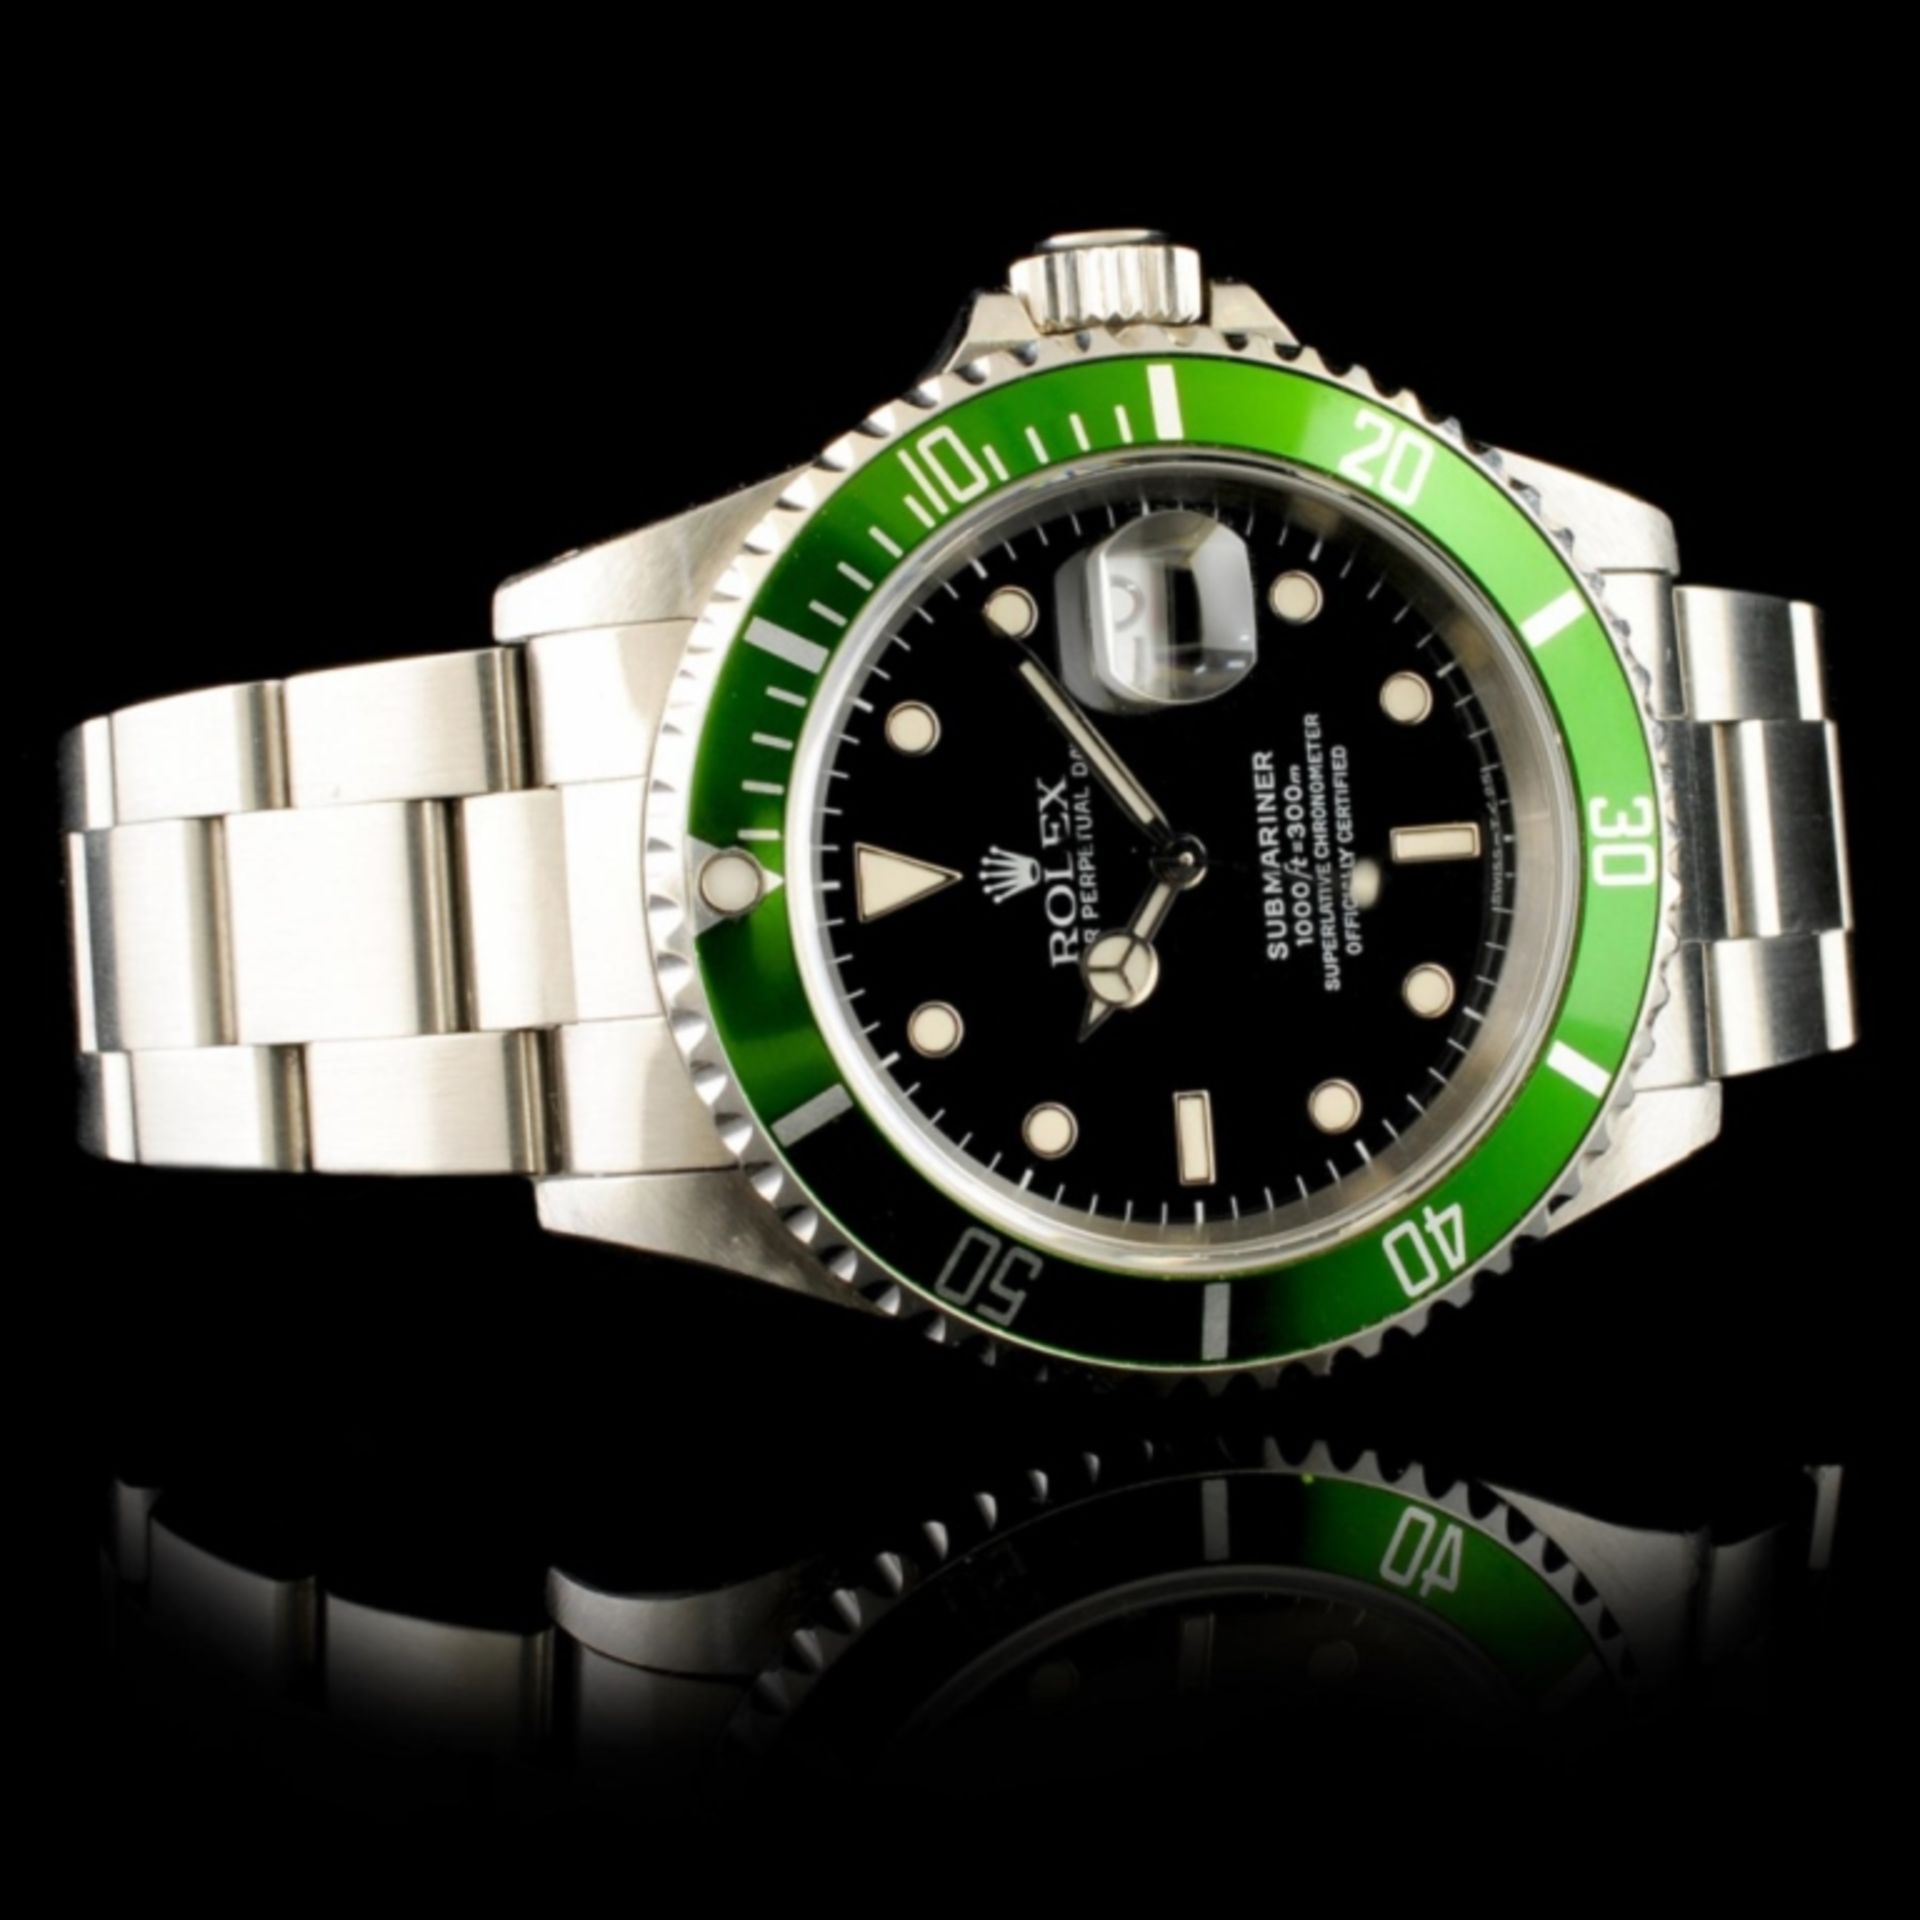 Rolex Submariner Stainless Steel 40MM Wristwatch - Image 4 of 5